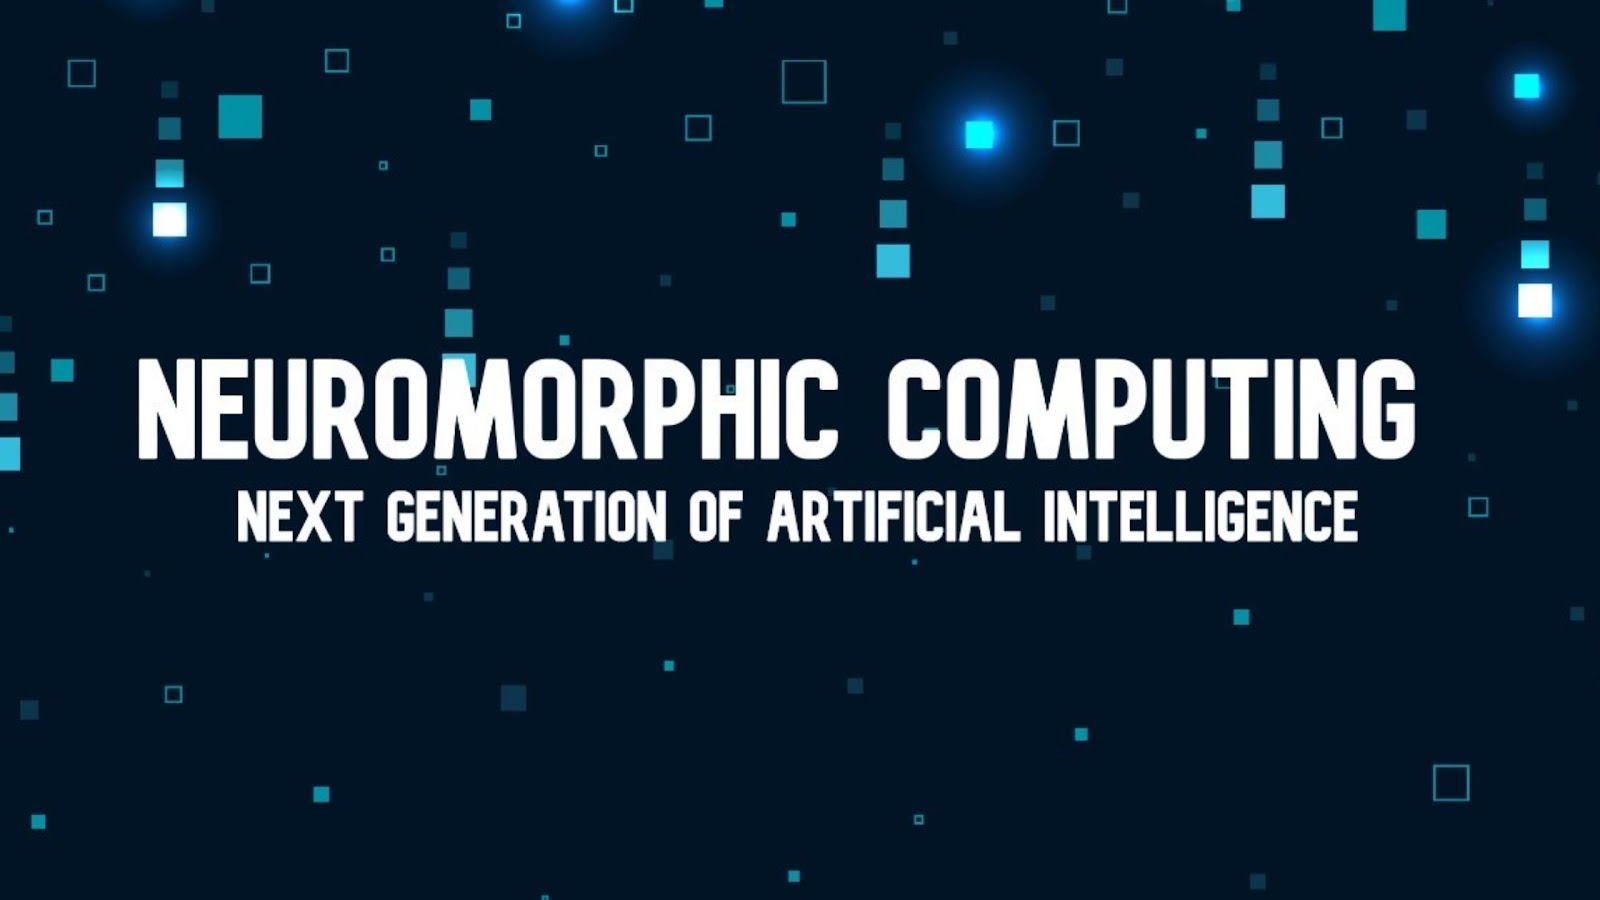 What's Neuromorphic Computing?